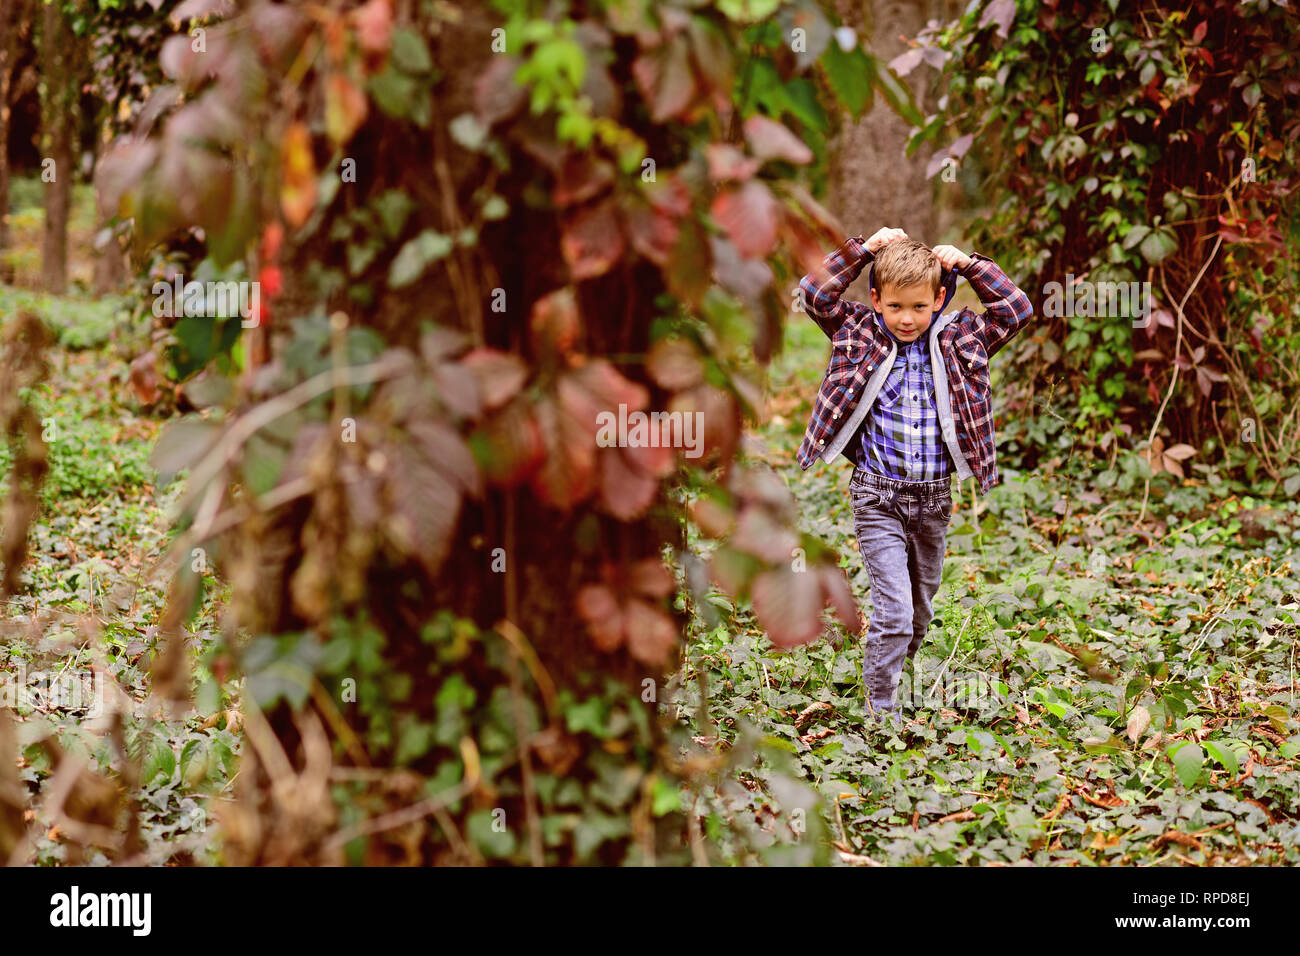 Lets just go walking. Little boy walking around in woods. Little boy walking into the wild. Enjoying the scenery and the wildlife - Stock Image